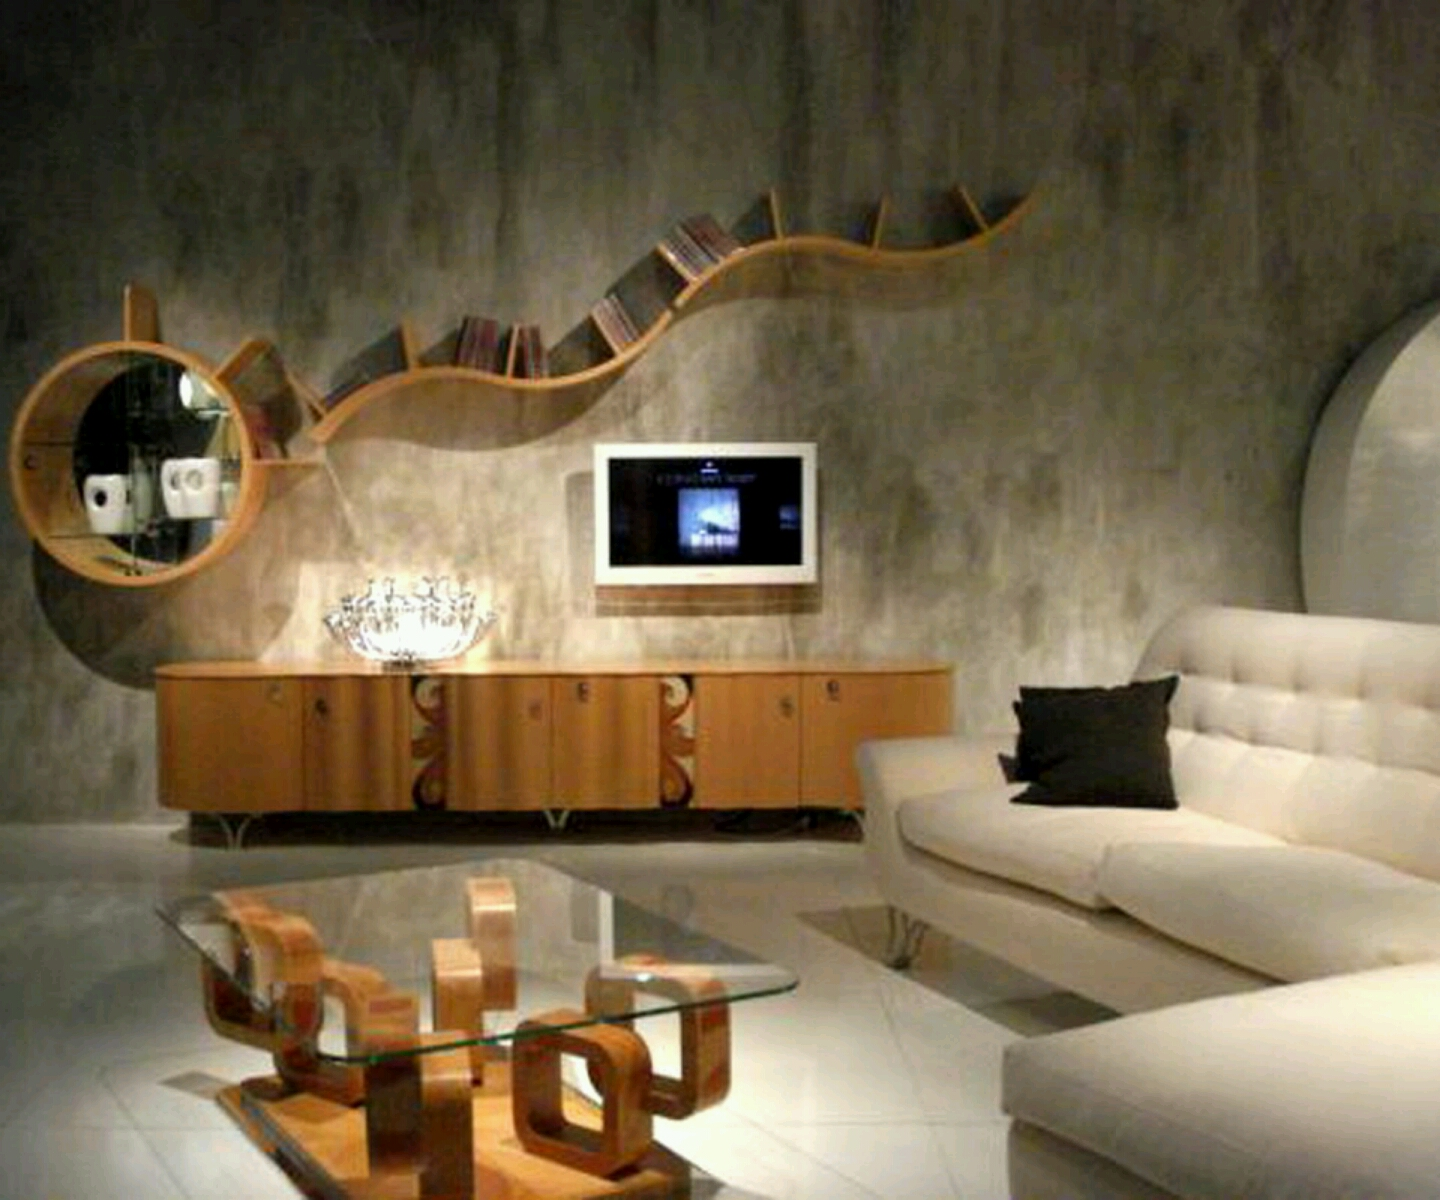 New home designs latest modern living room designs ideas for Home decor ideas living room modern